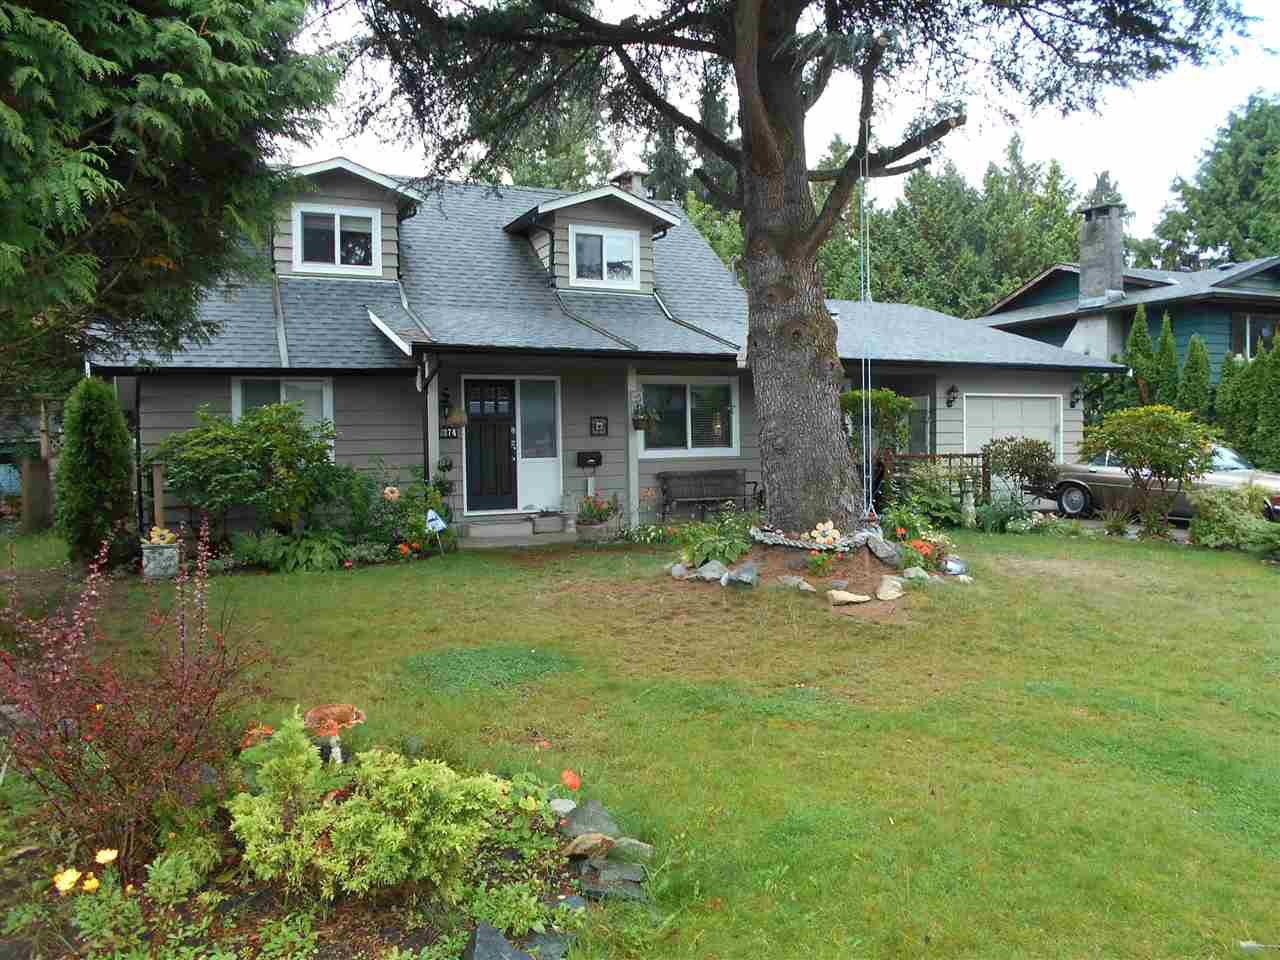 Main Photo: 18874 120 AVENUE in : Central Meadows House for sale (Pitt Meadows)  : MLS®# R2208653